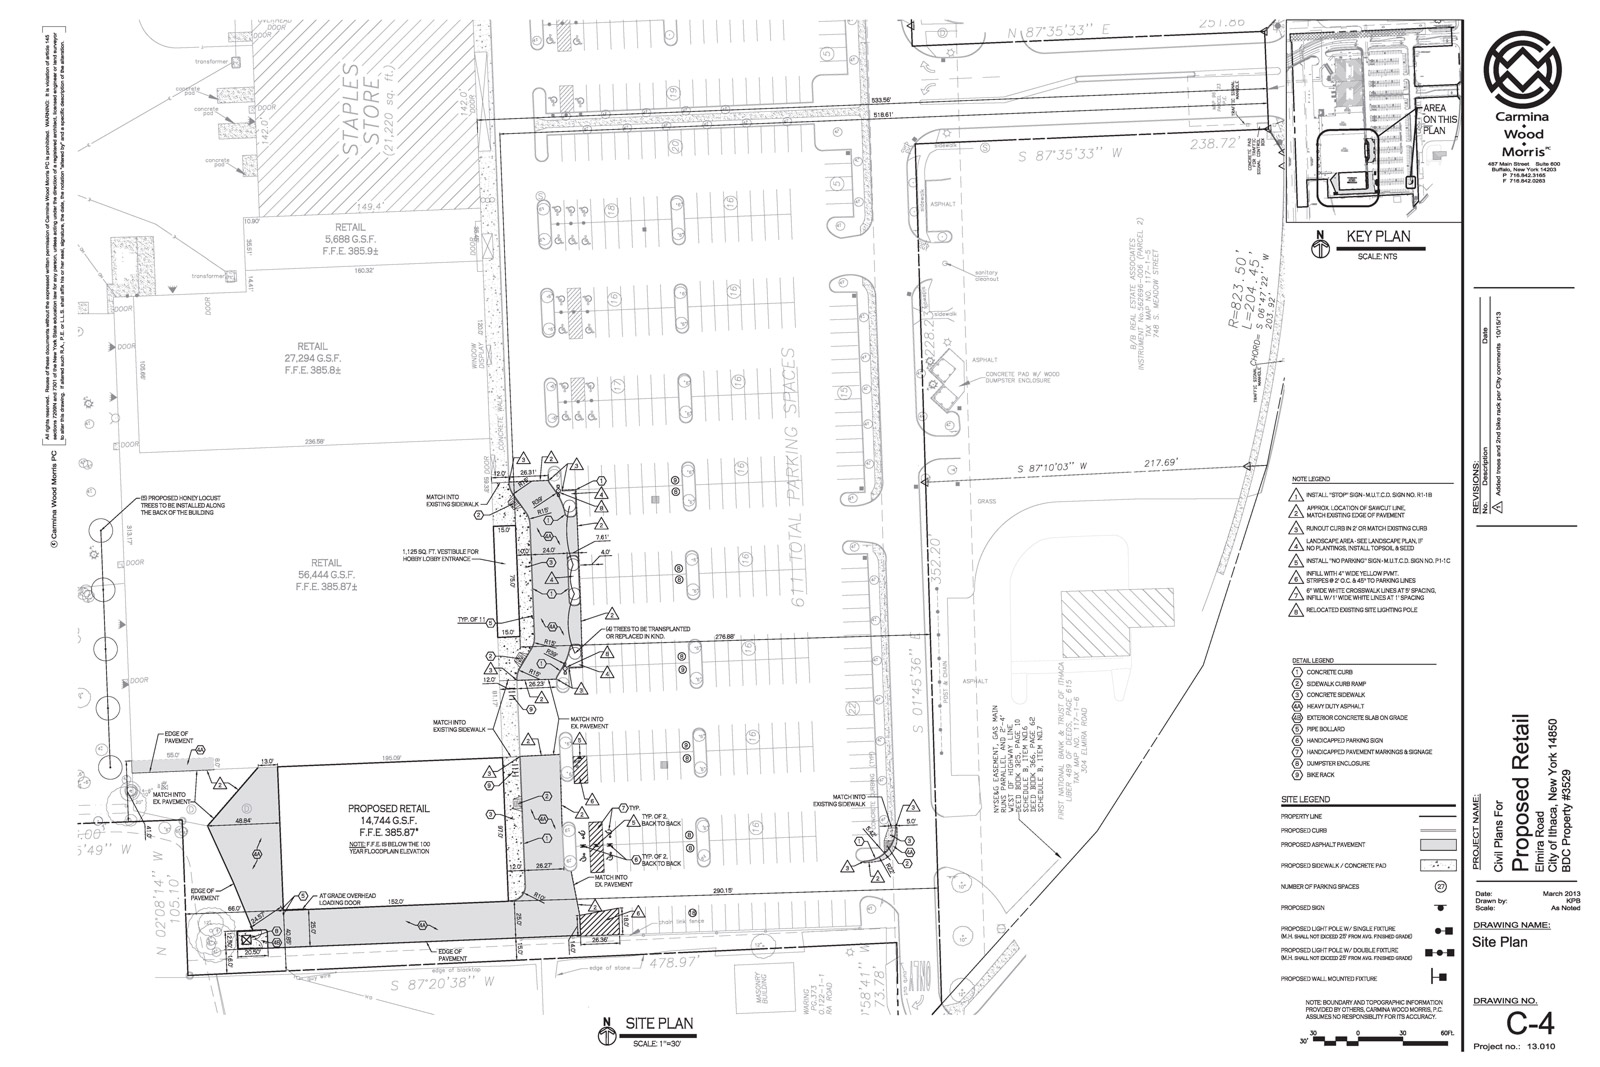 744-South-Meadow-Street---Marketplace-Expansion---Site-Development-Drawings---11-01-13-copy_Page_3